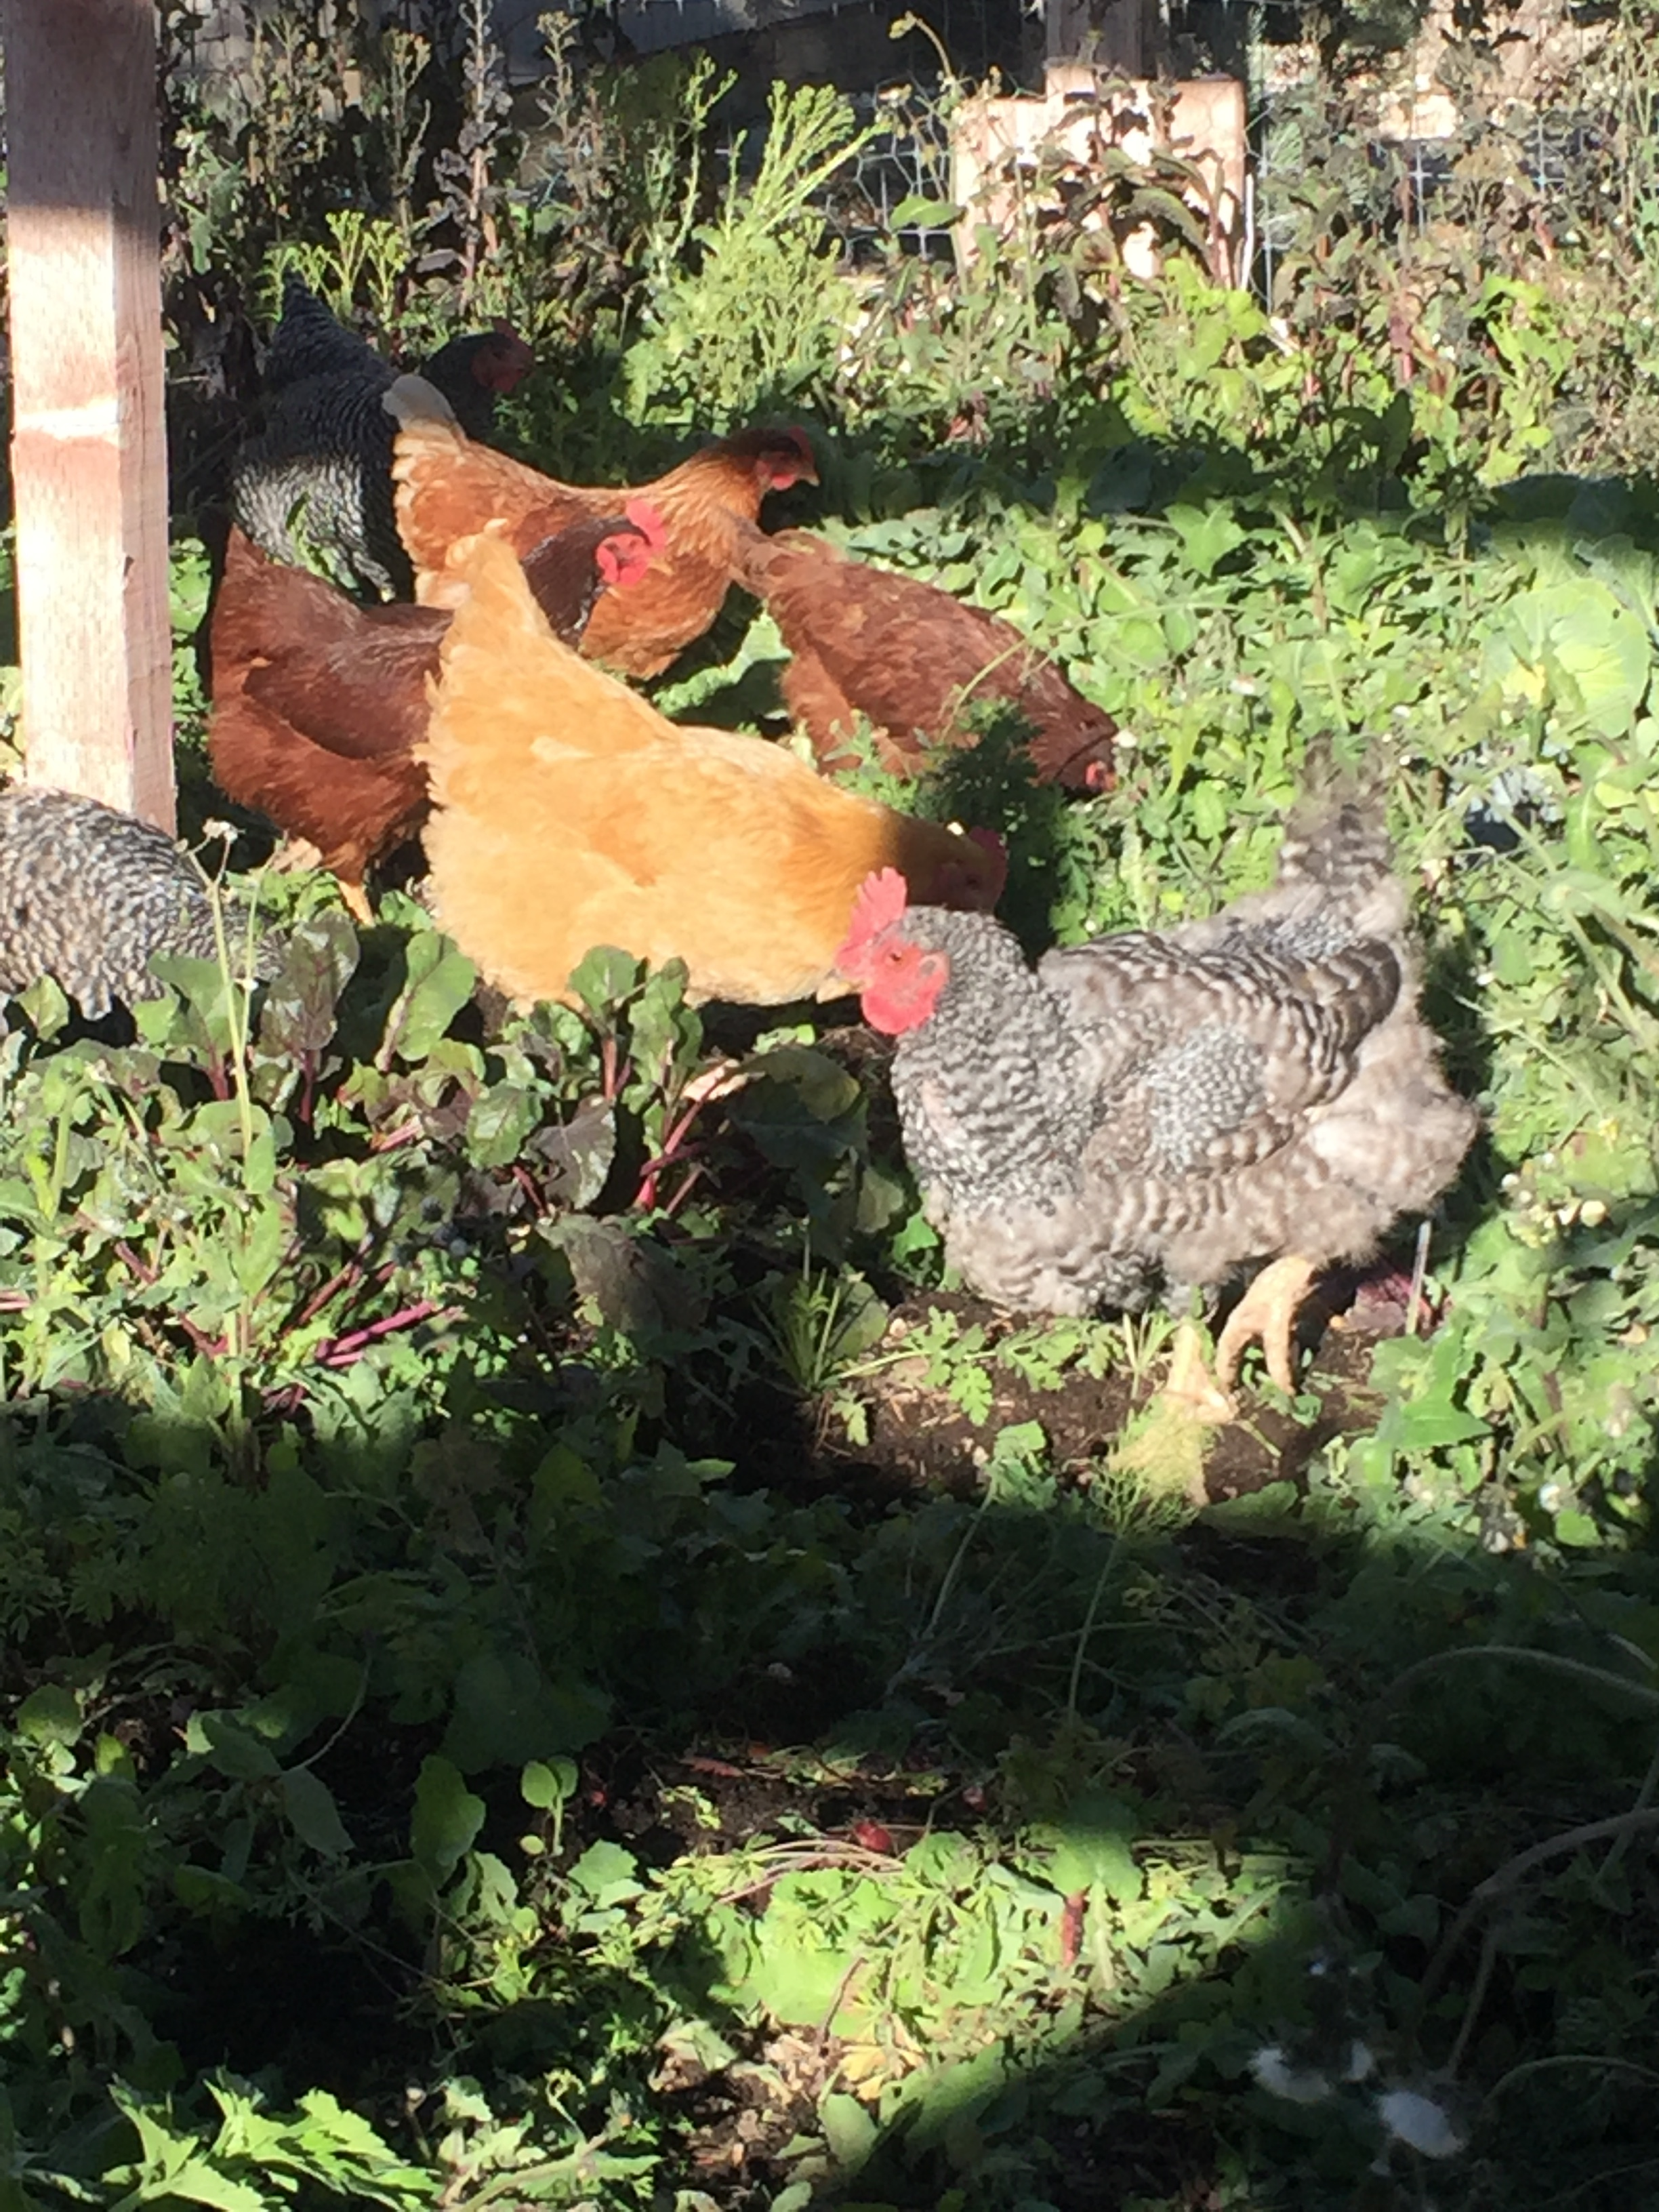 The chickens' first day in the Fall garden.